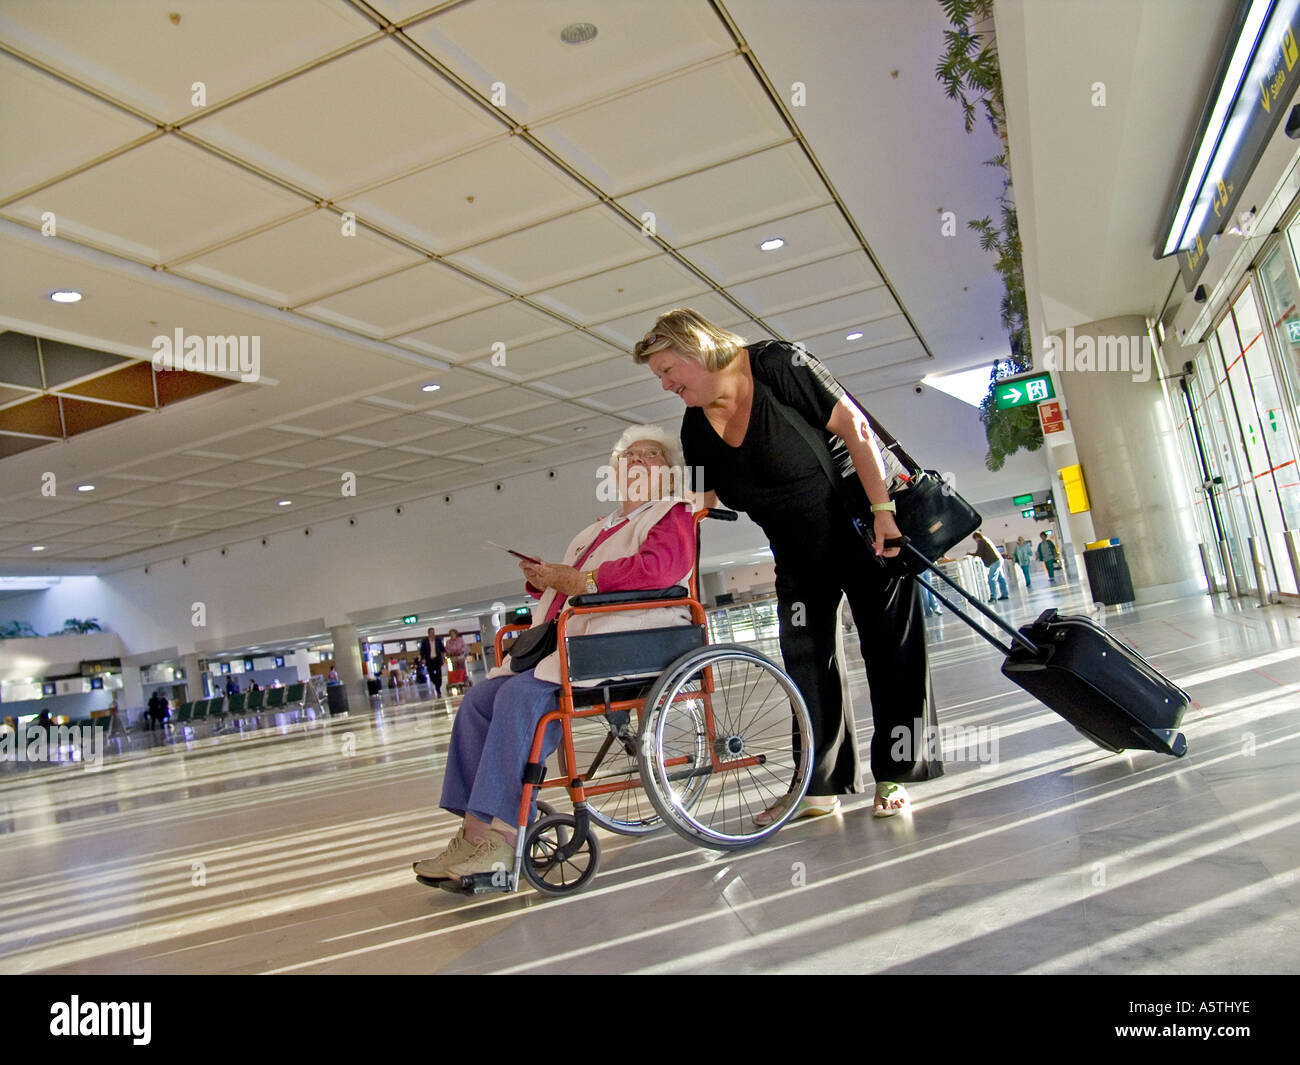 Elderly Woman In Wheelchair With Female Carer Companion On Airport Concourse Preparing To Travel Stock Photo Alamy